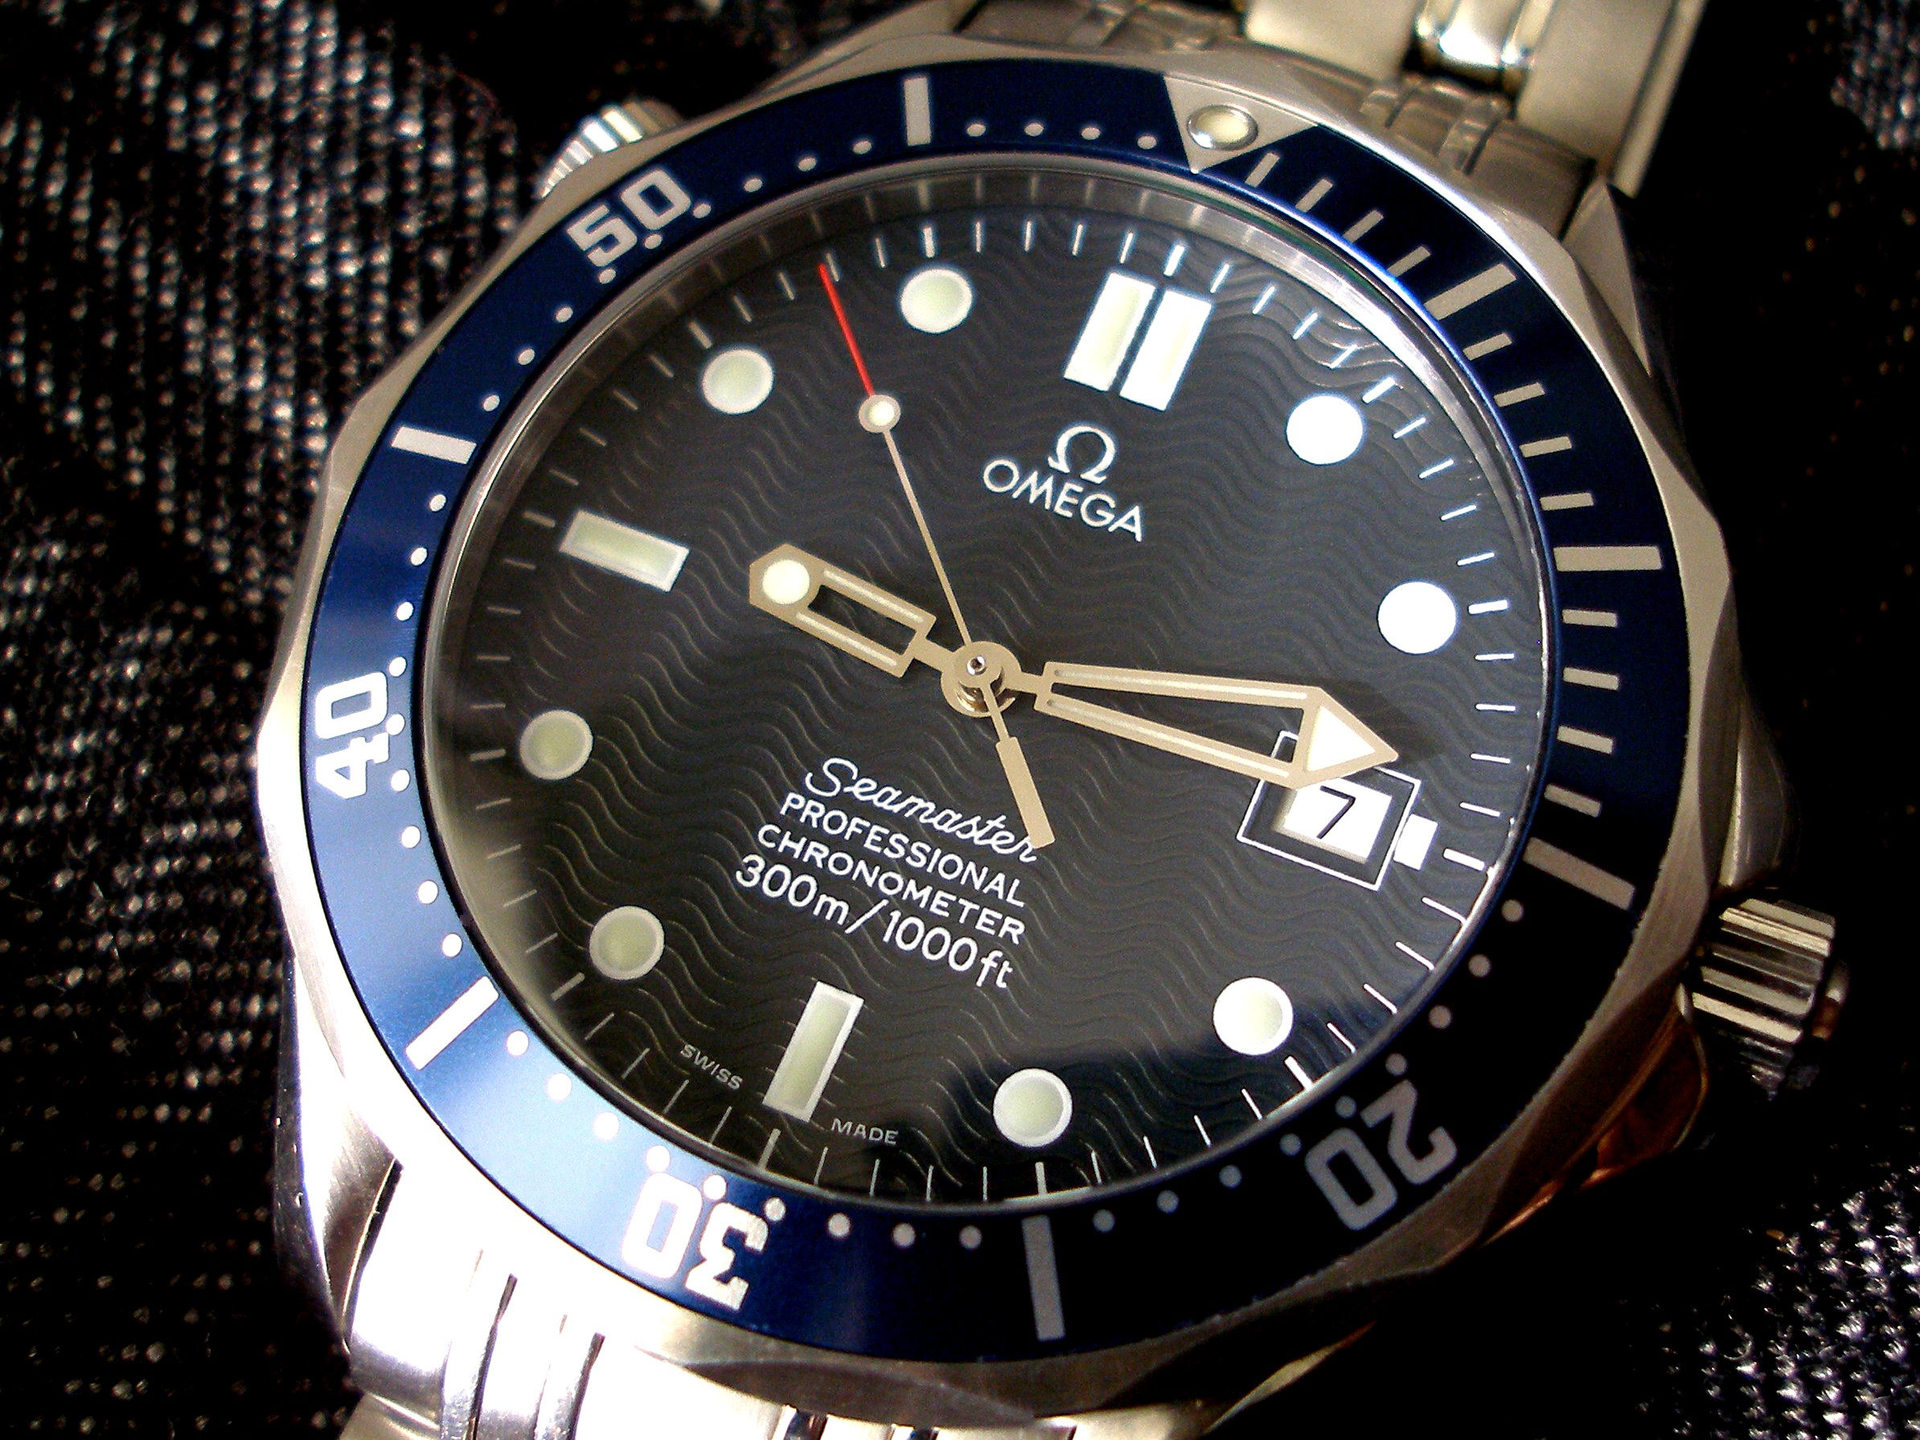 Watches images Omega HD wallpaper and background photos 482066